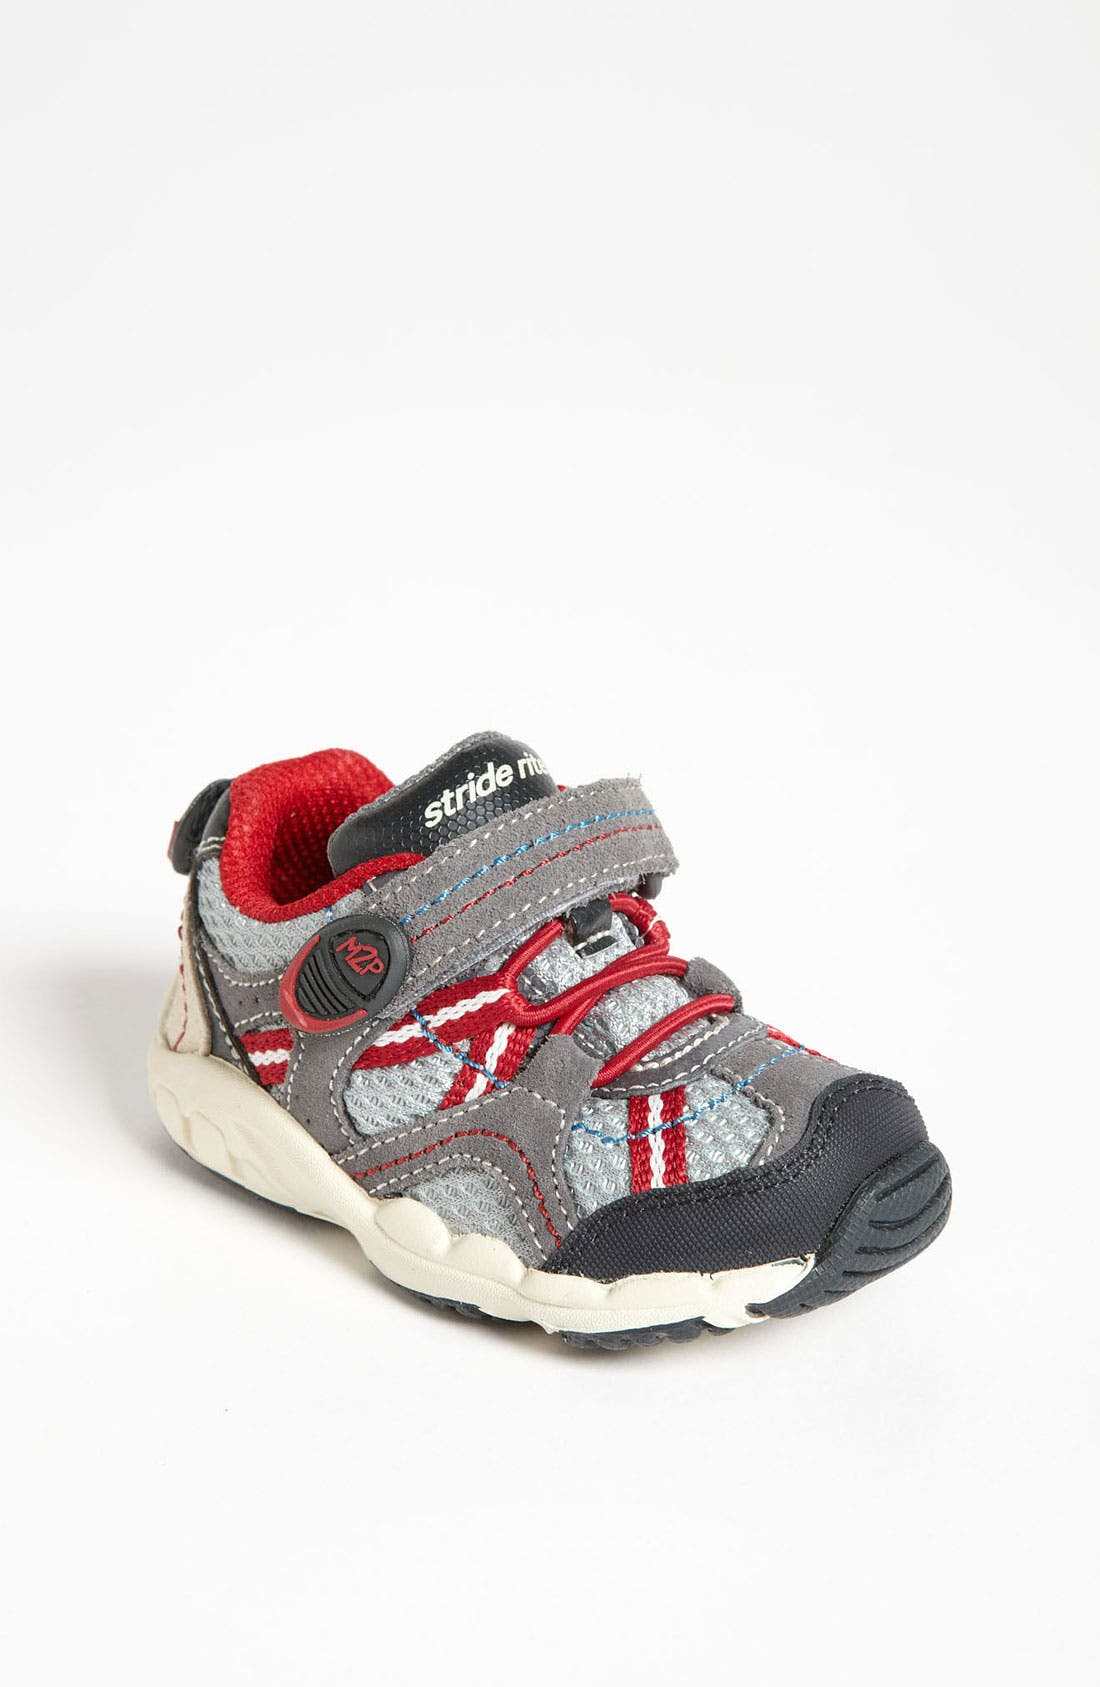 Alternate Image 1 Selected - Stride Rite 'Baby Griffin' Sneaker (Baby, Walker & Toddler)